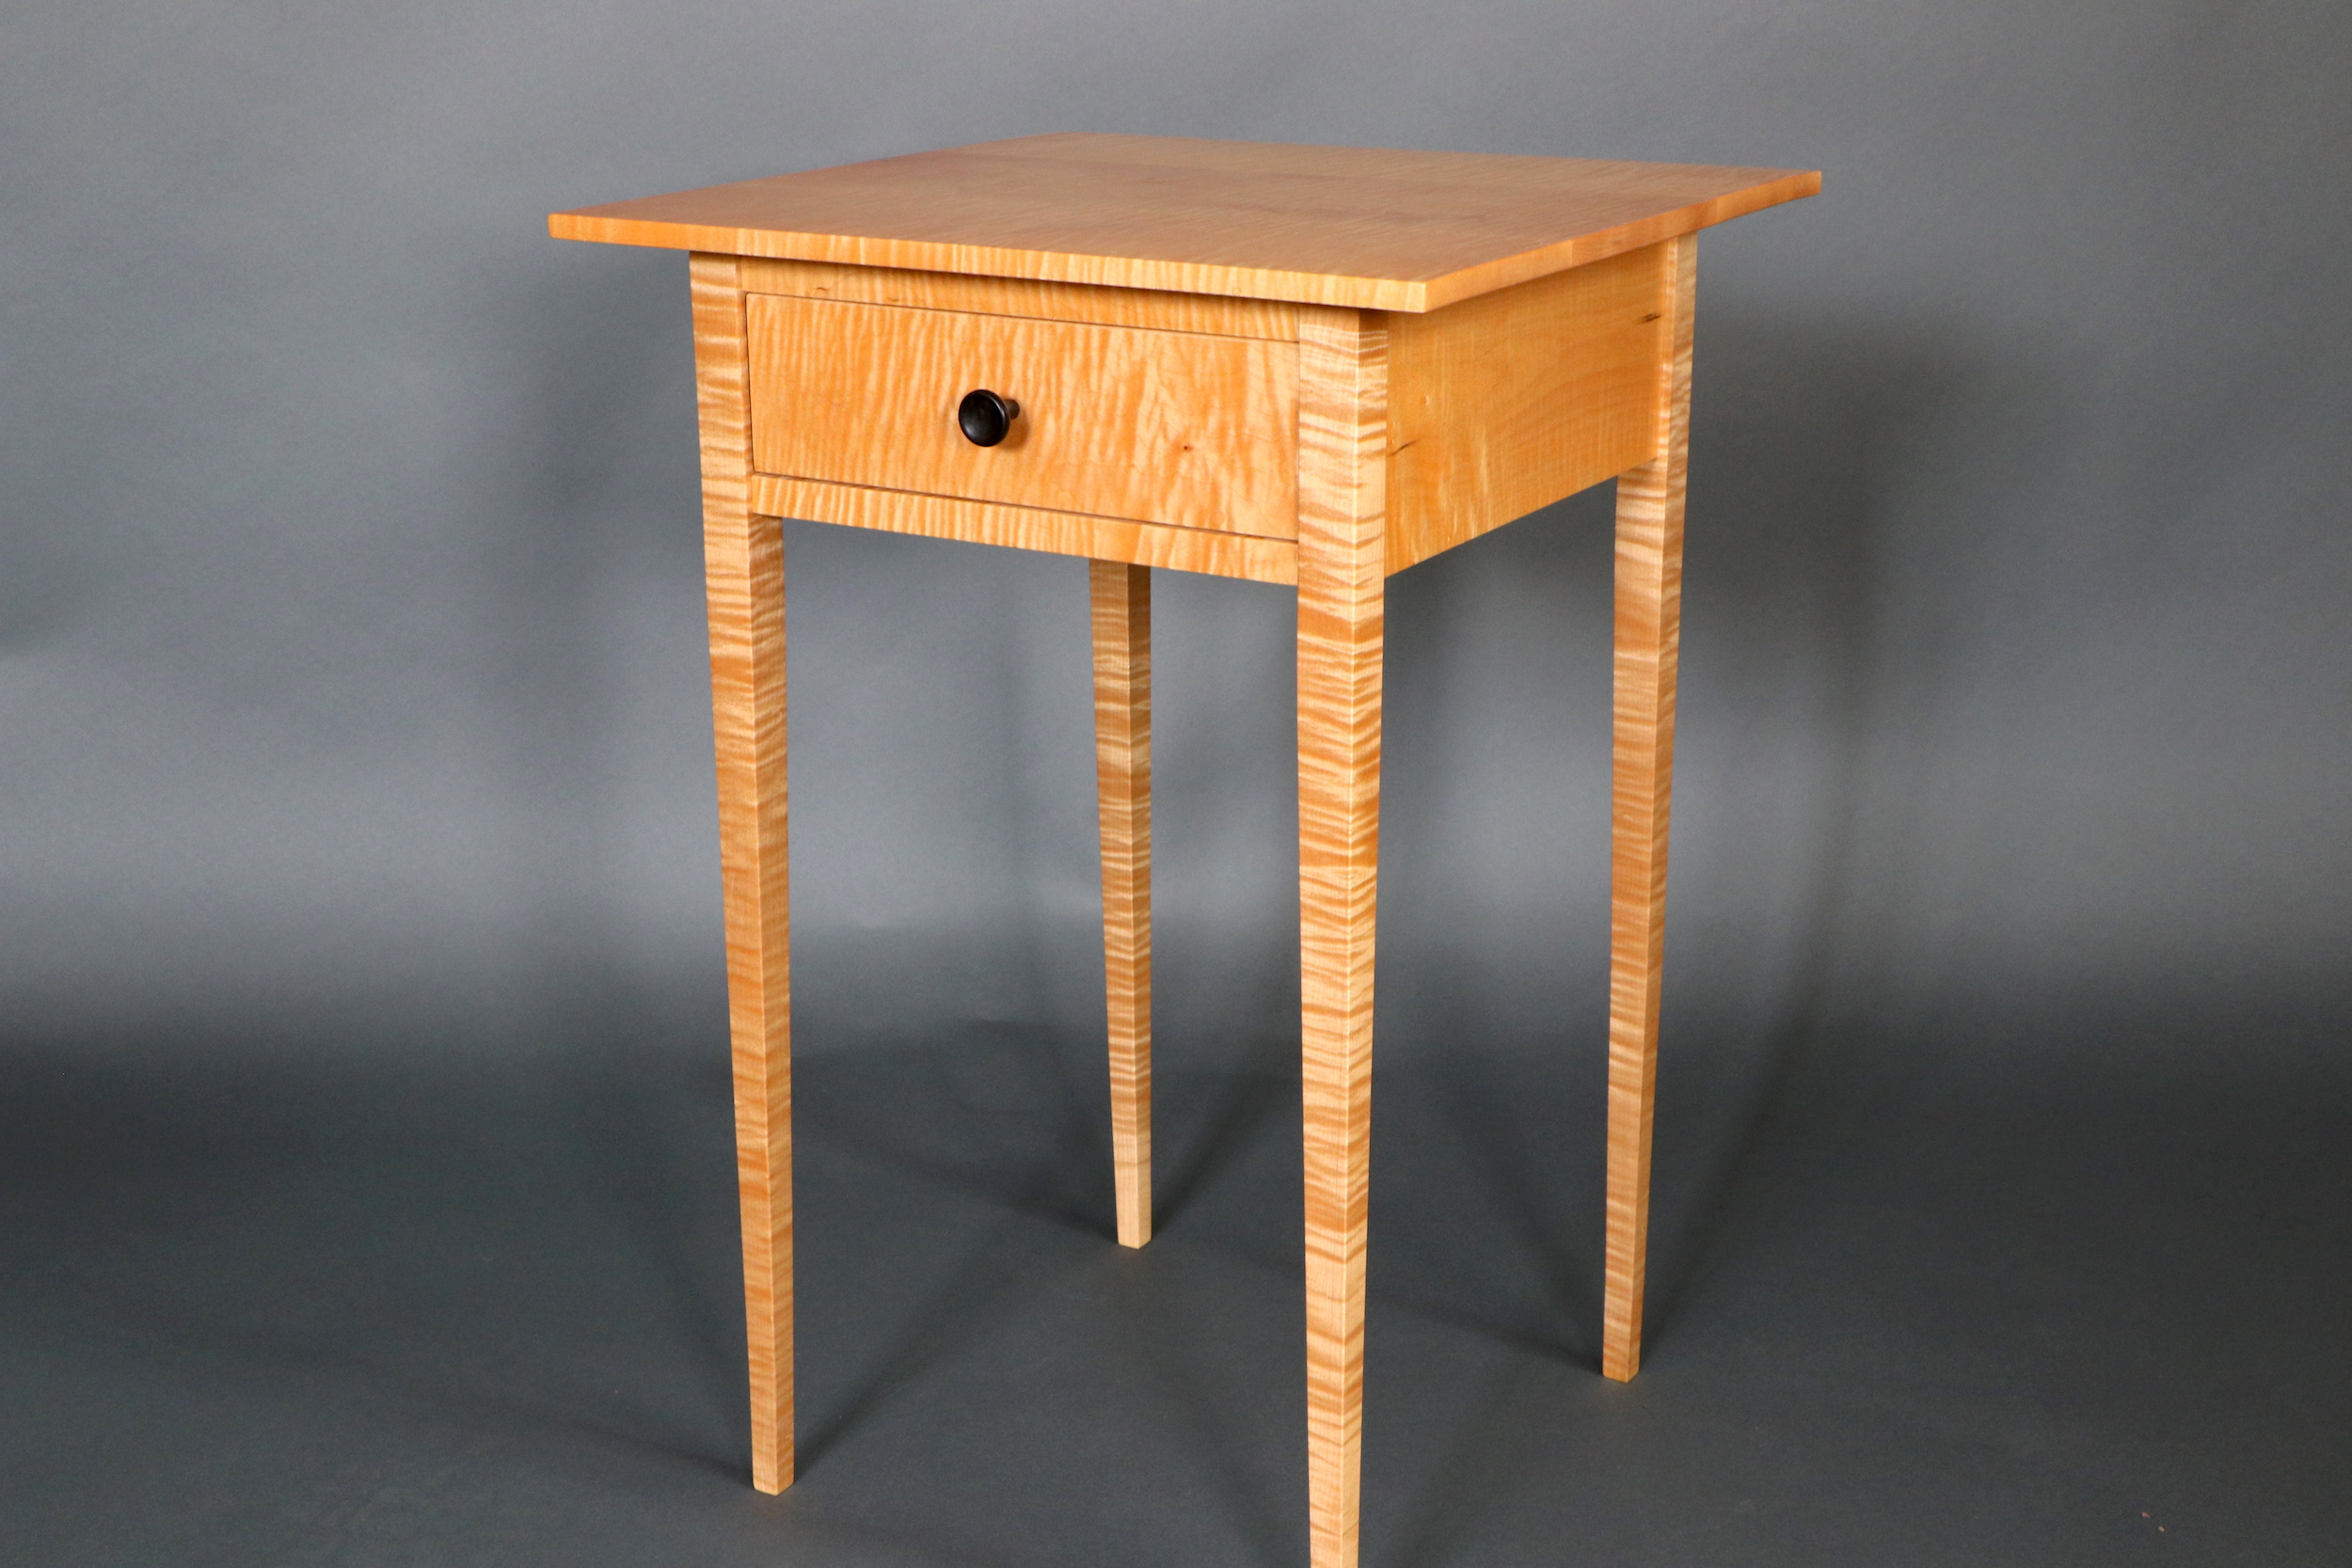 Groovy Shaker Table The Wood Whisperer Guild Alphanode Cool Chair Designs And Ideas Alphanodeonline